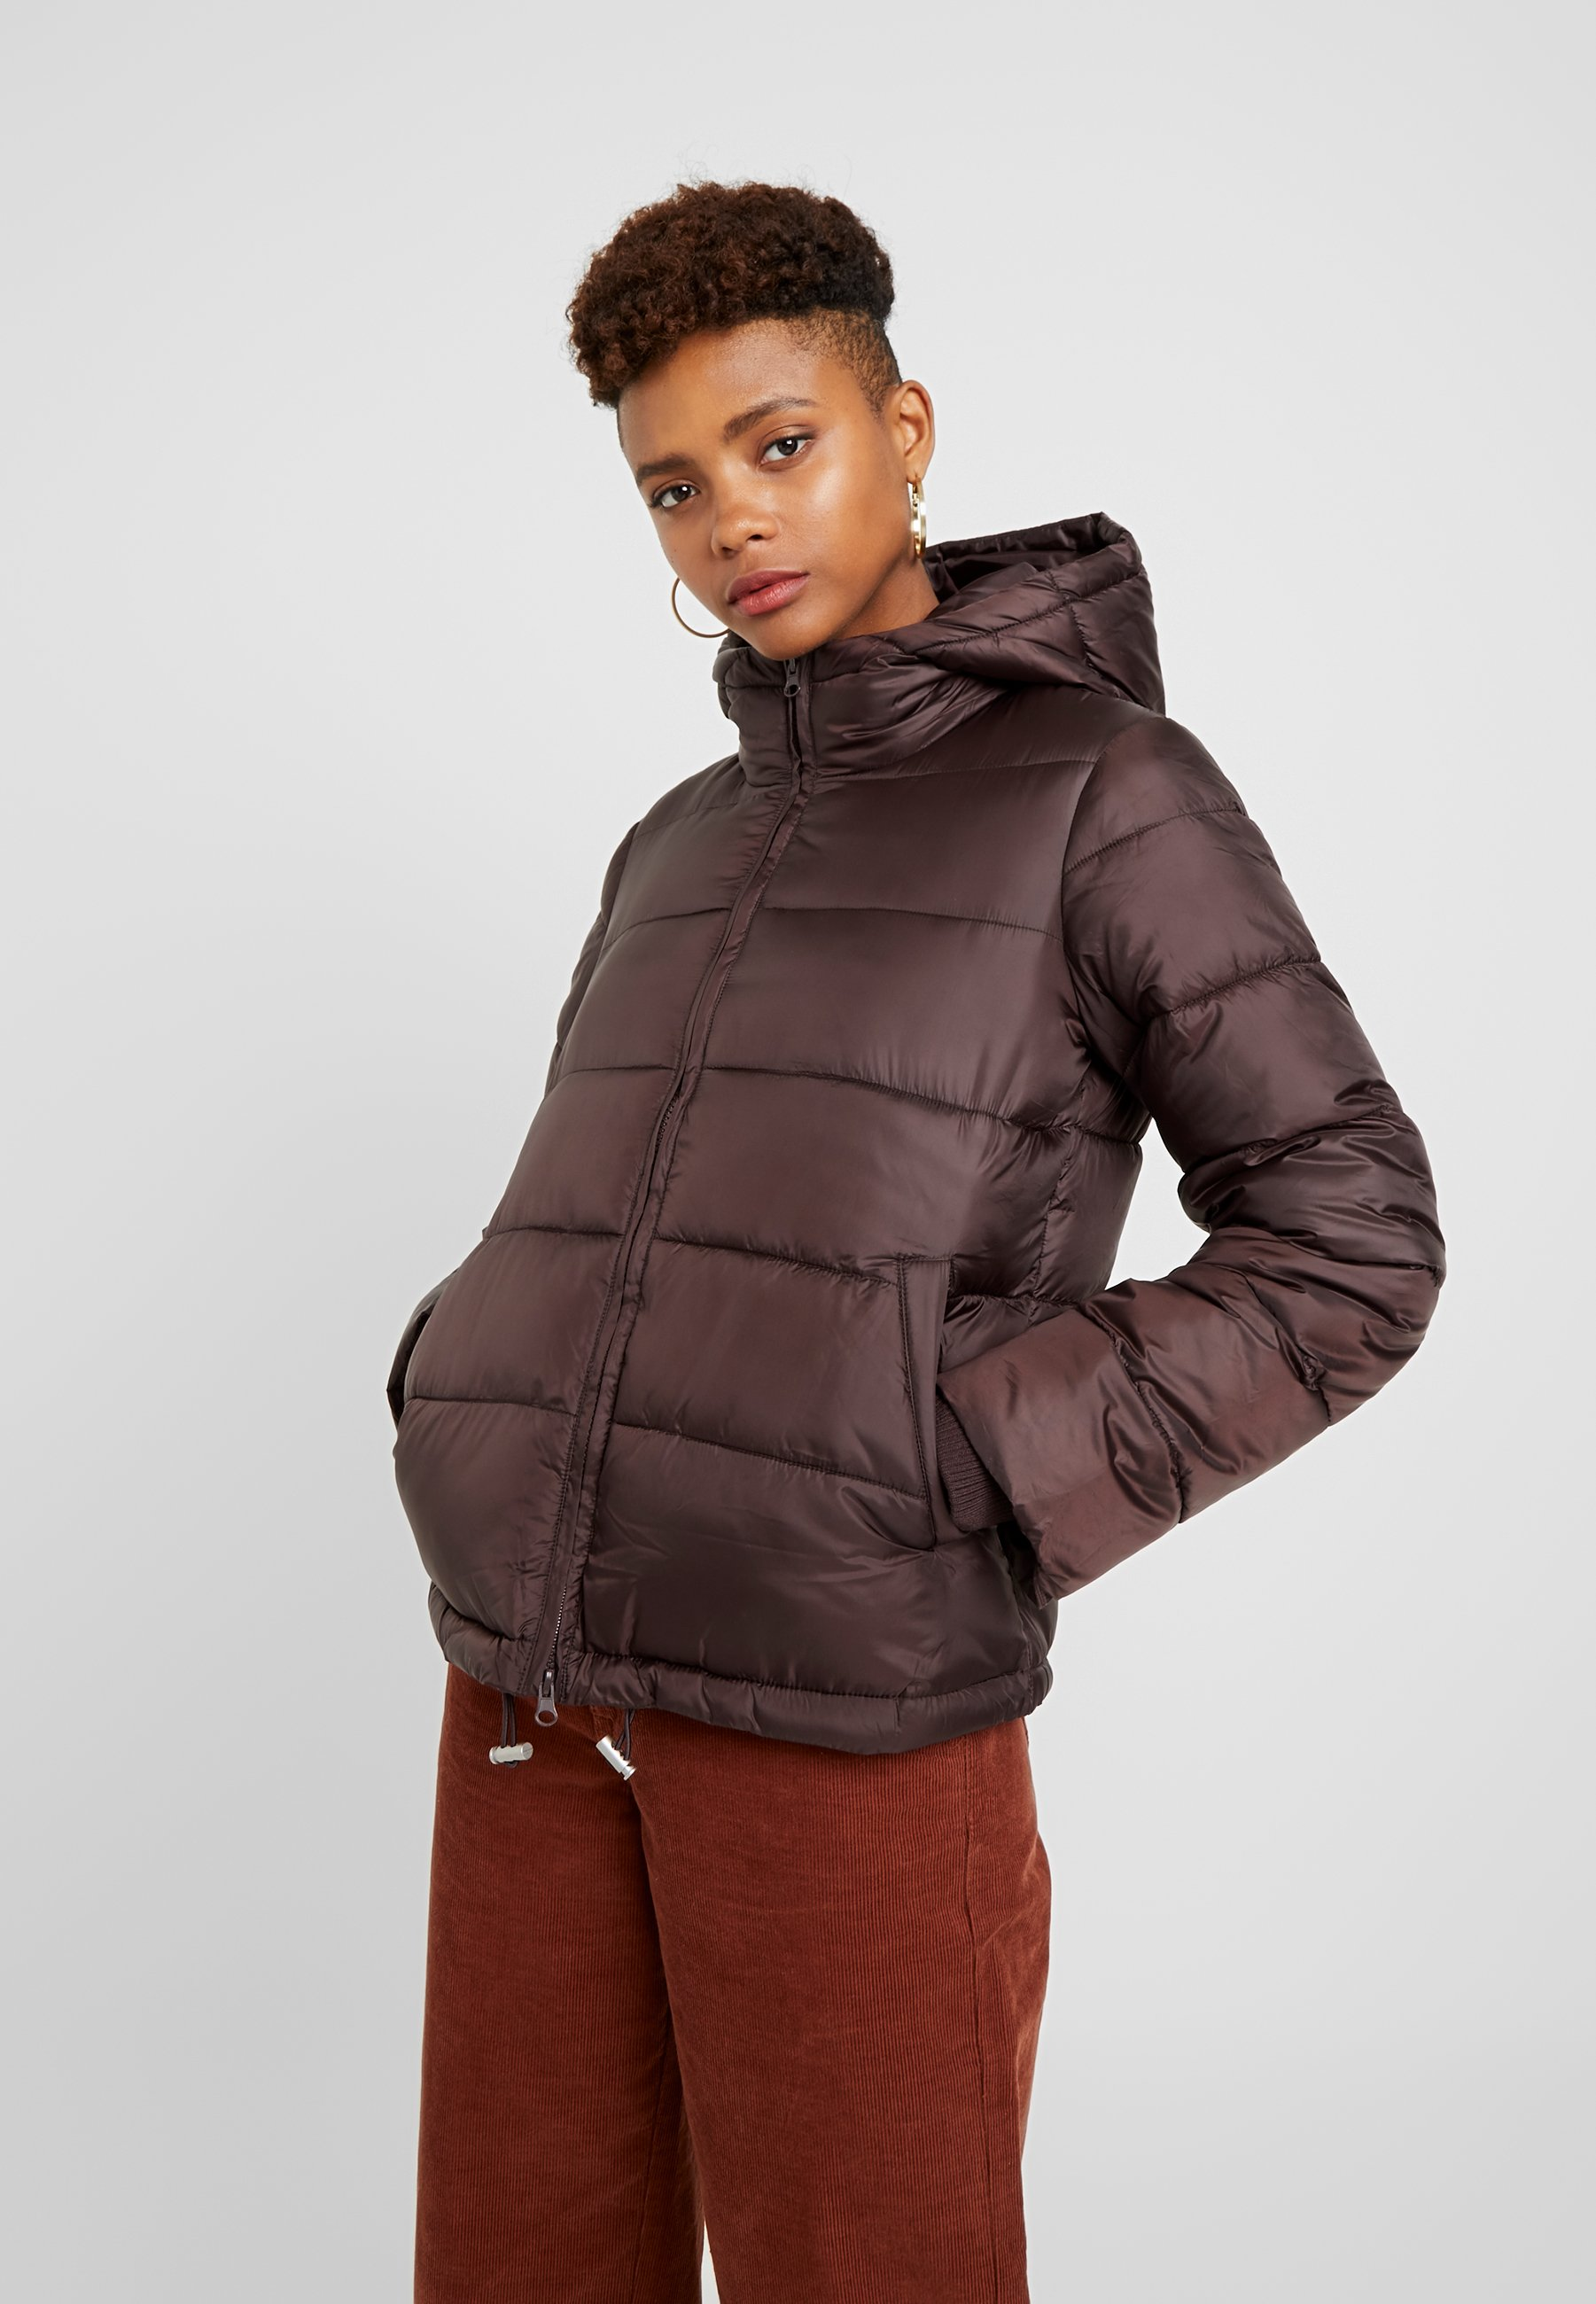 Pieces JacketVeste saison Chocolate Plum Padded Mi Pceve Short QtsxdrhC